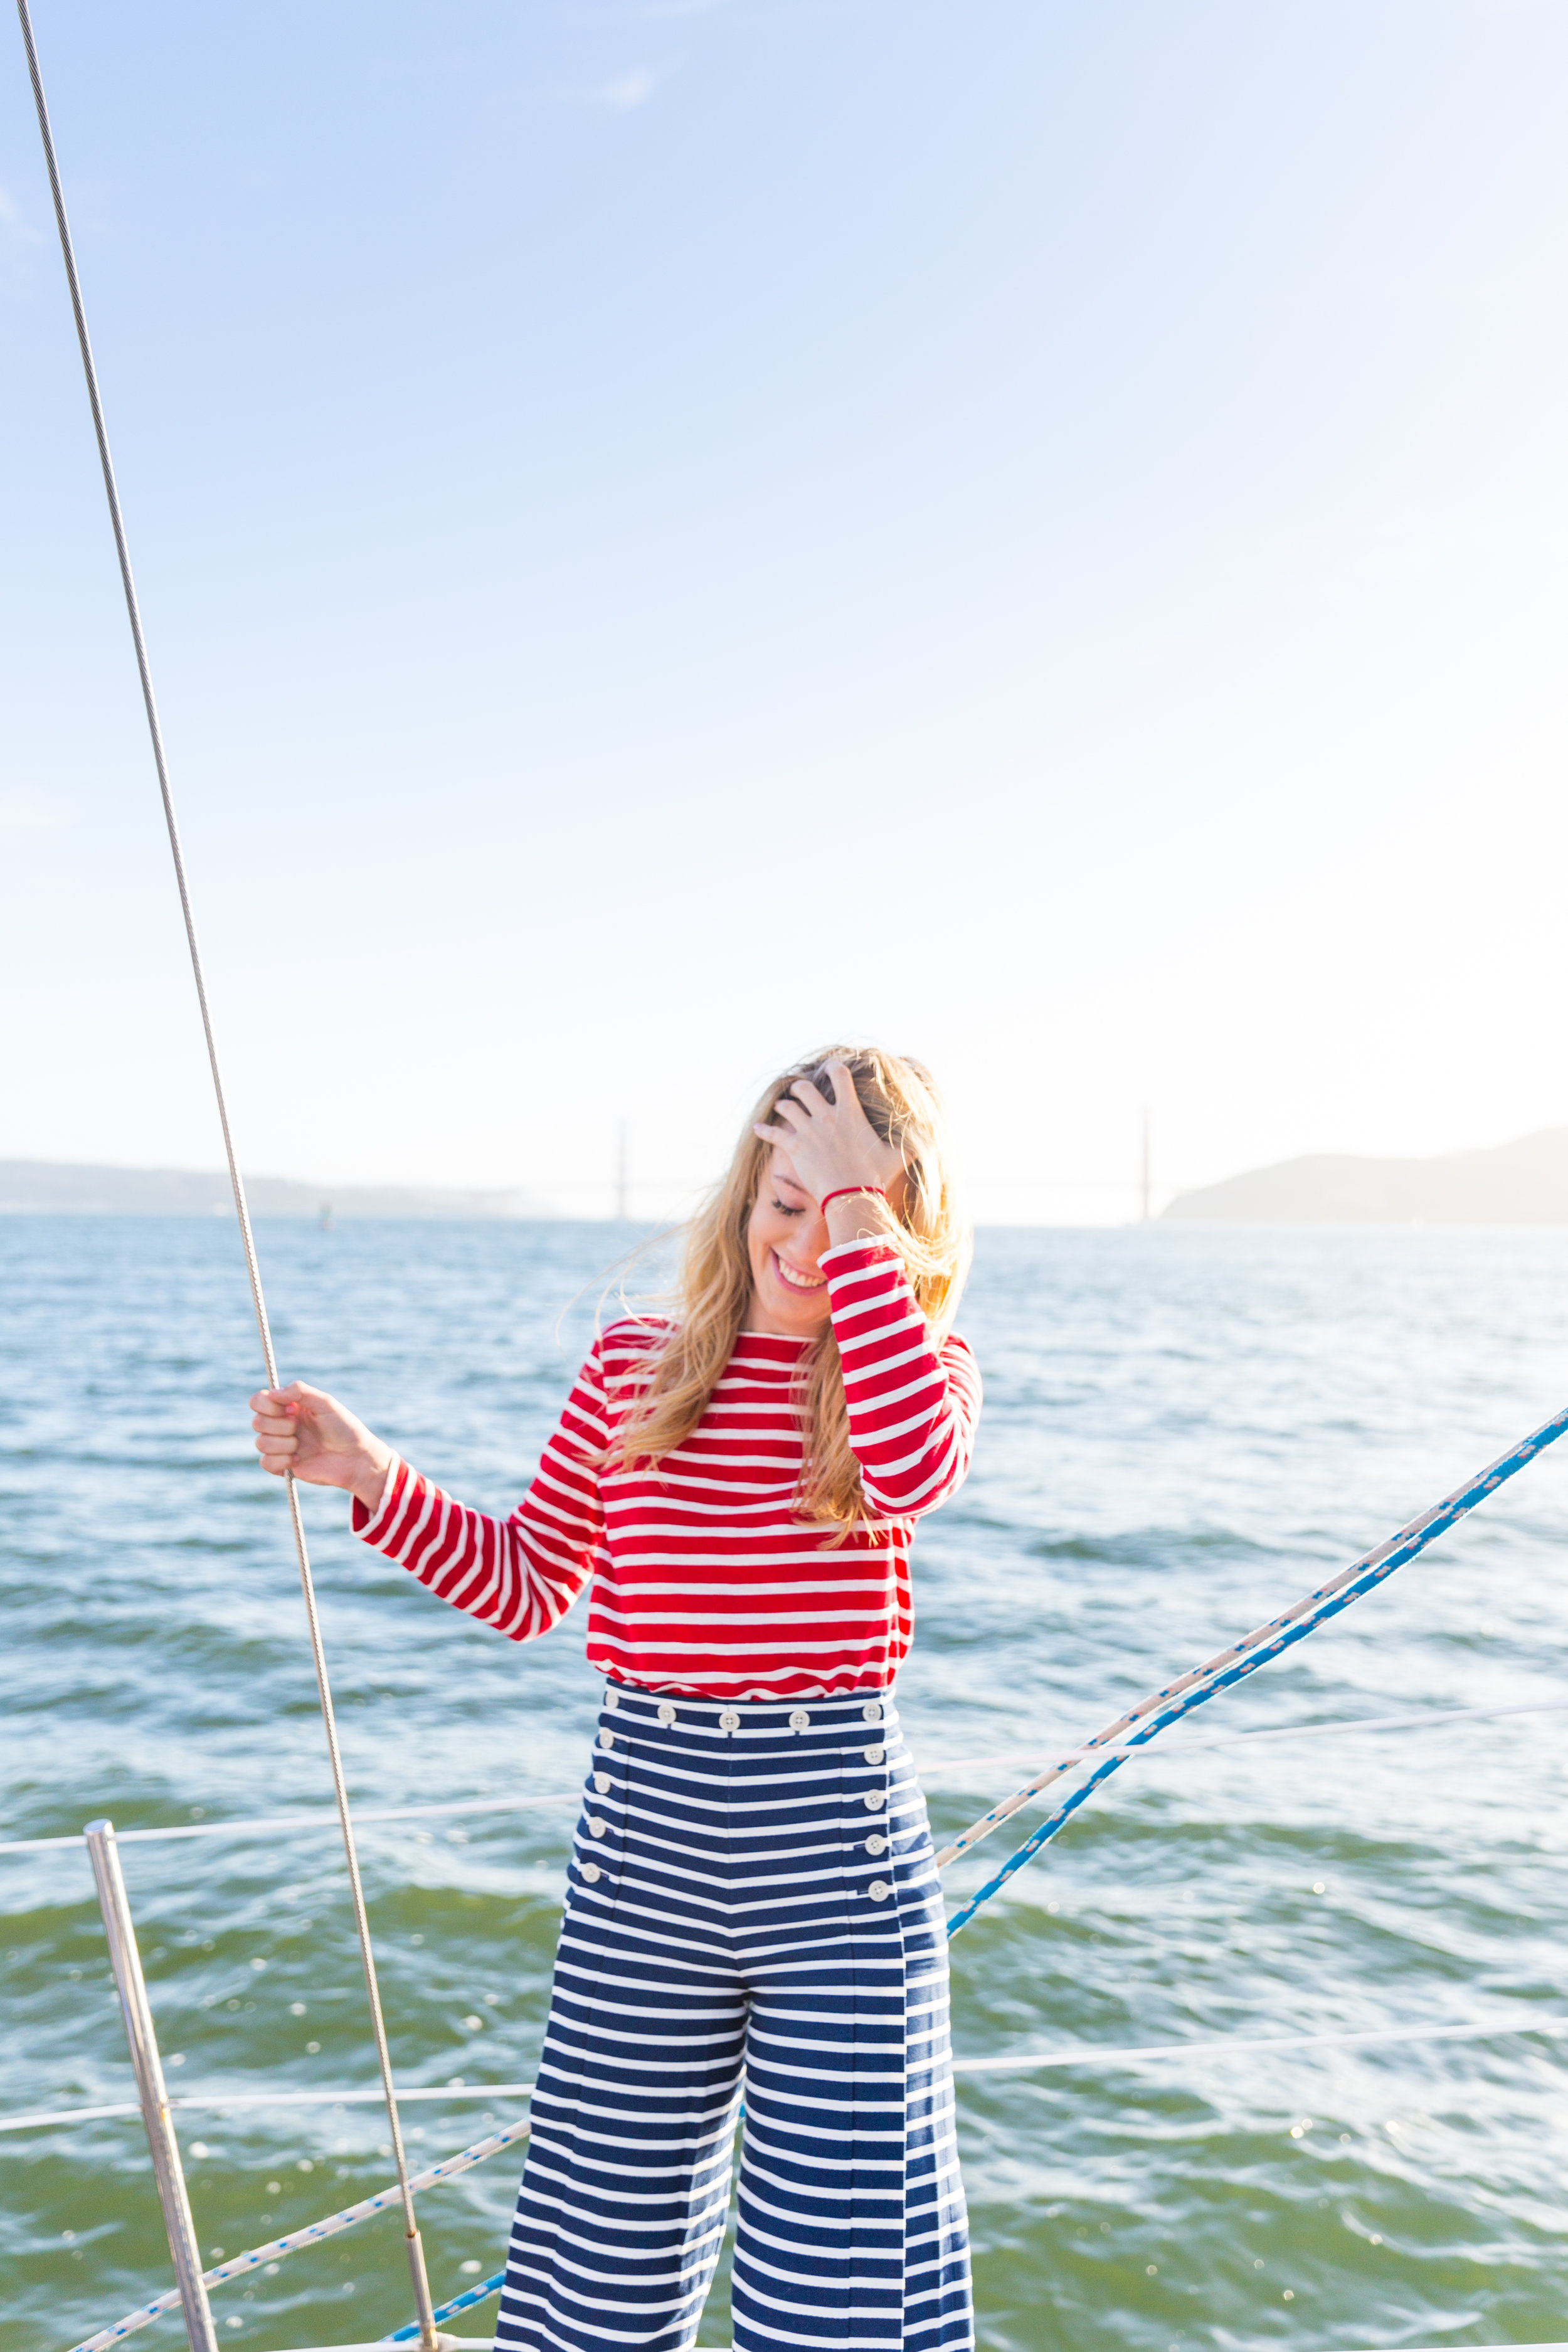 Striped Nautical Sunset Sail Outfit San Francisco-12.jpg